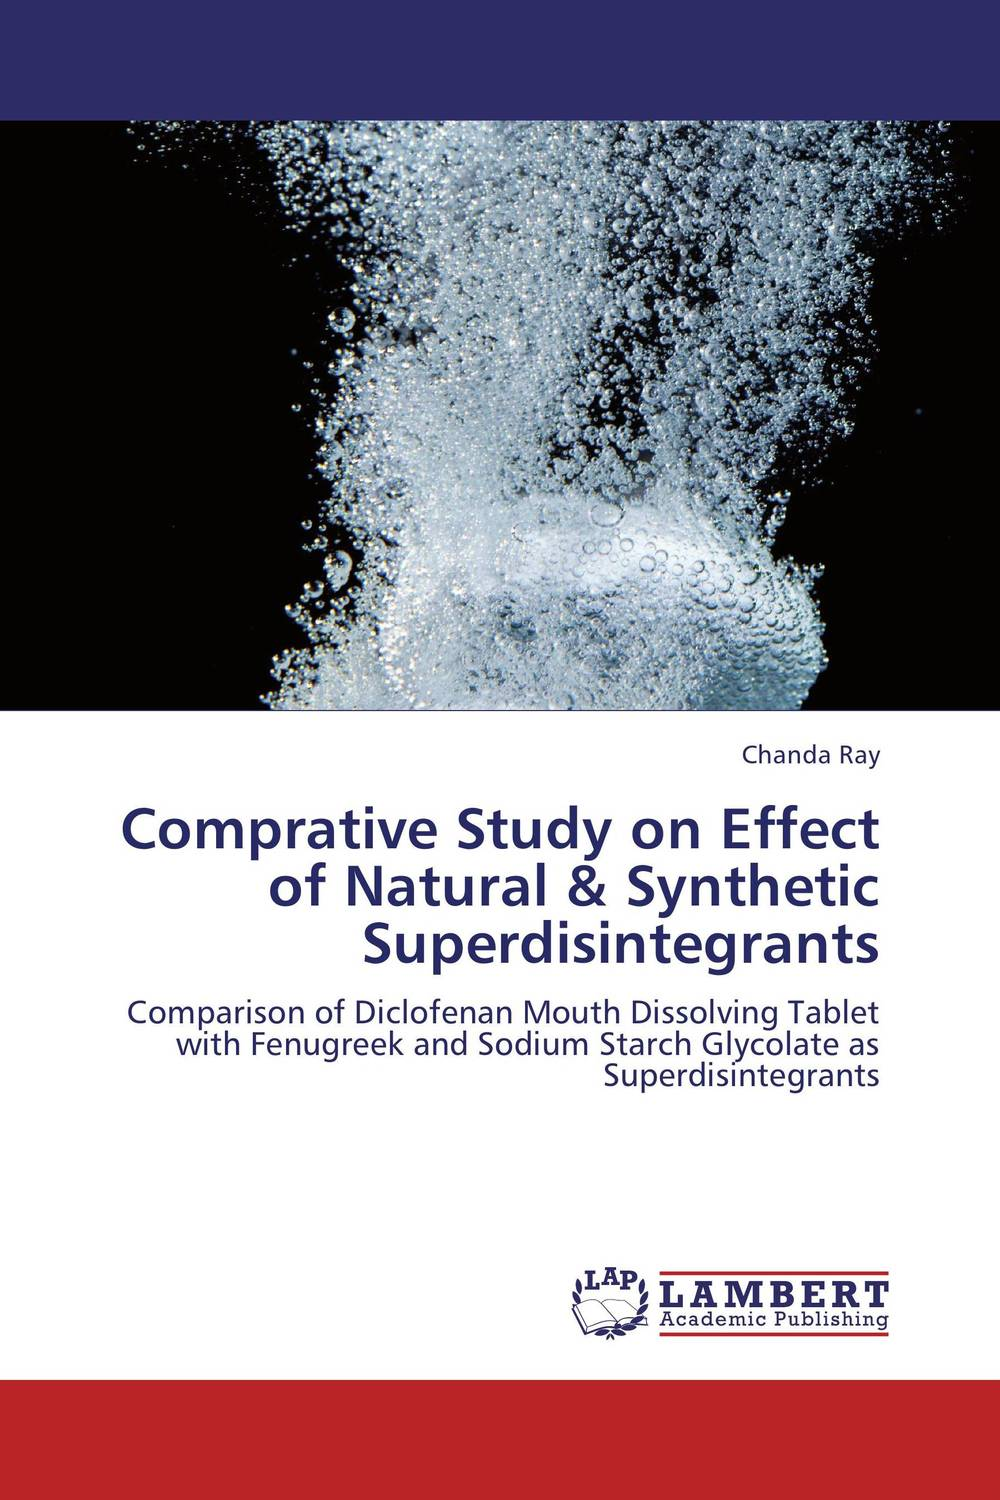 Comprative Study on Effect of Natural & Synthetic Superdisintegrants amita yadav kamal singh rathore and geeta m patel formulation evaluation and optimization of mouth dissolving tablets